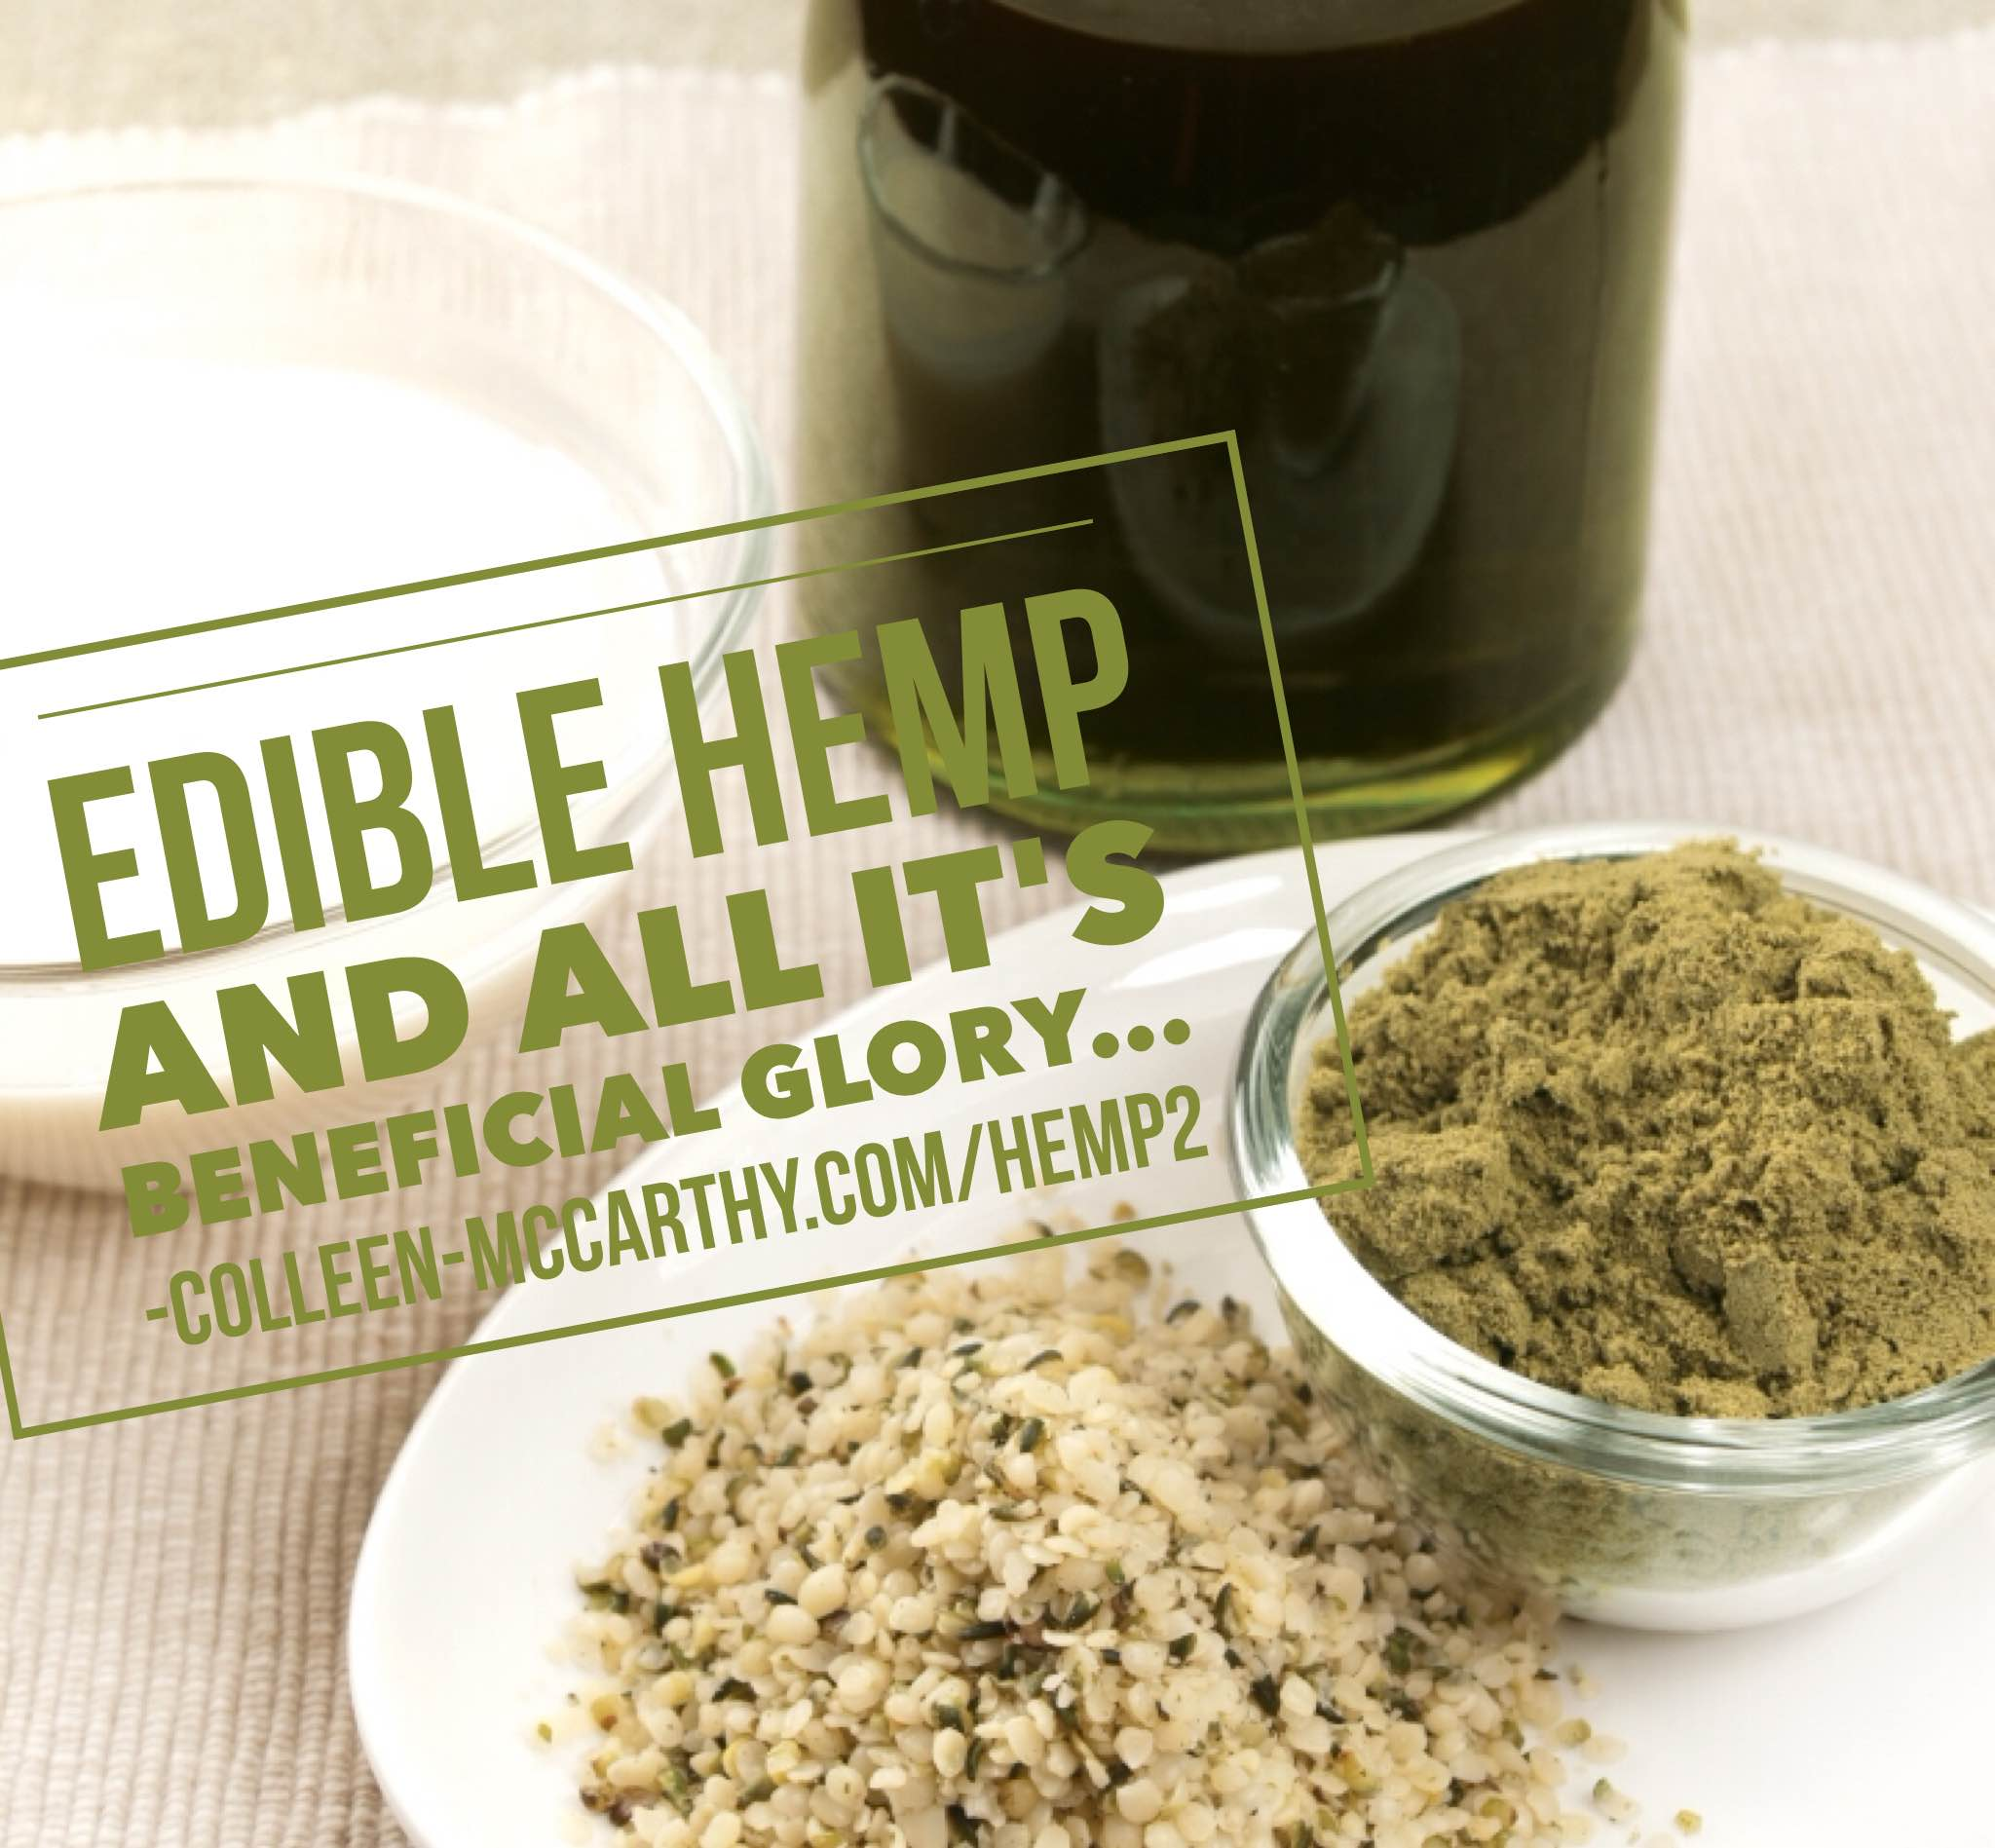 Edible Hemp